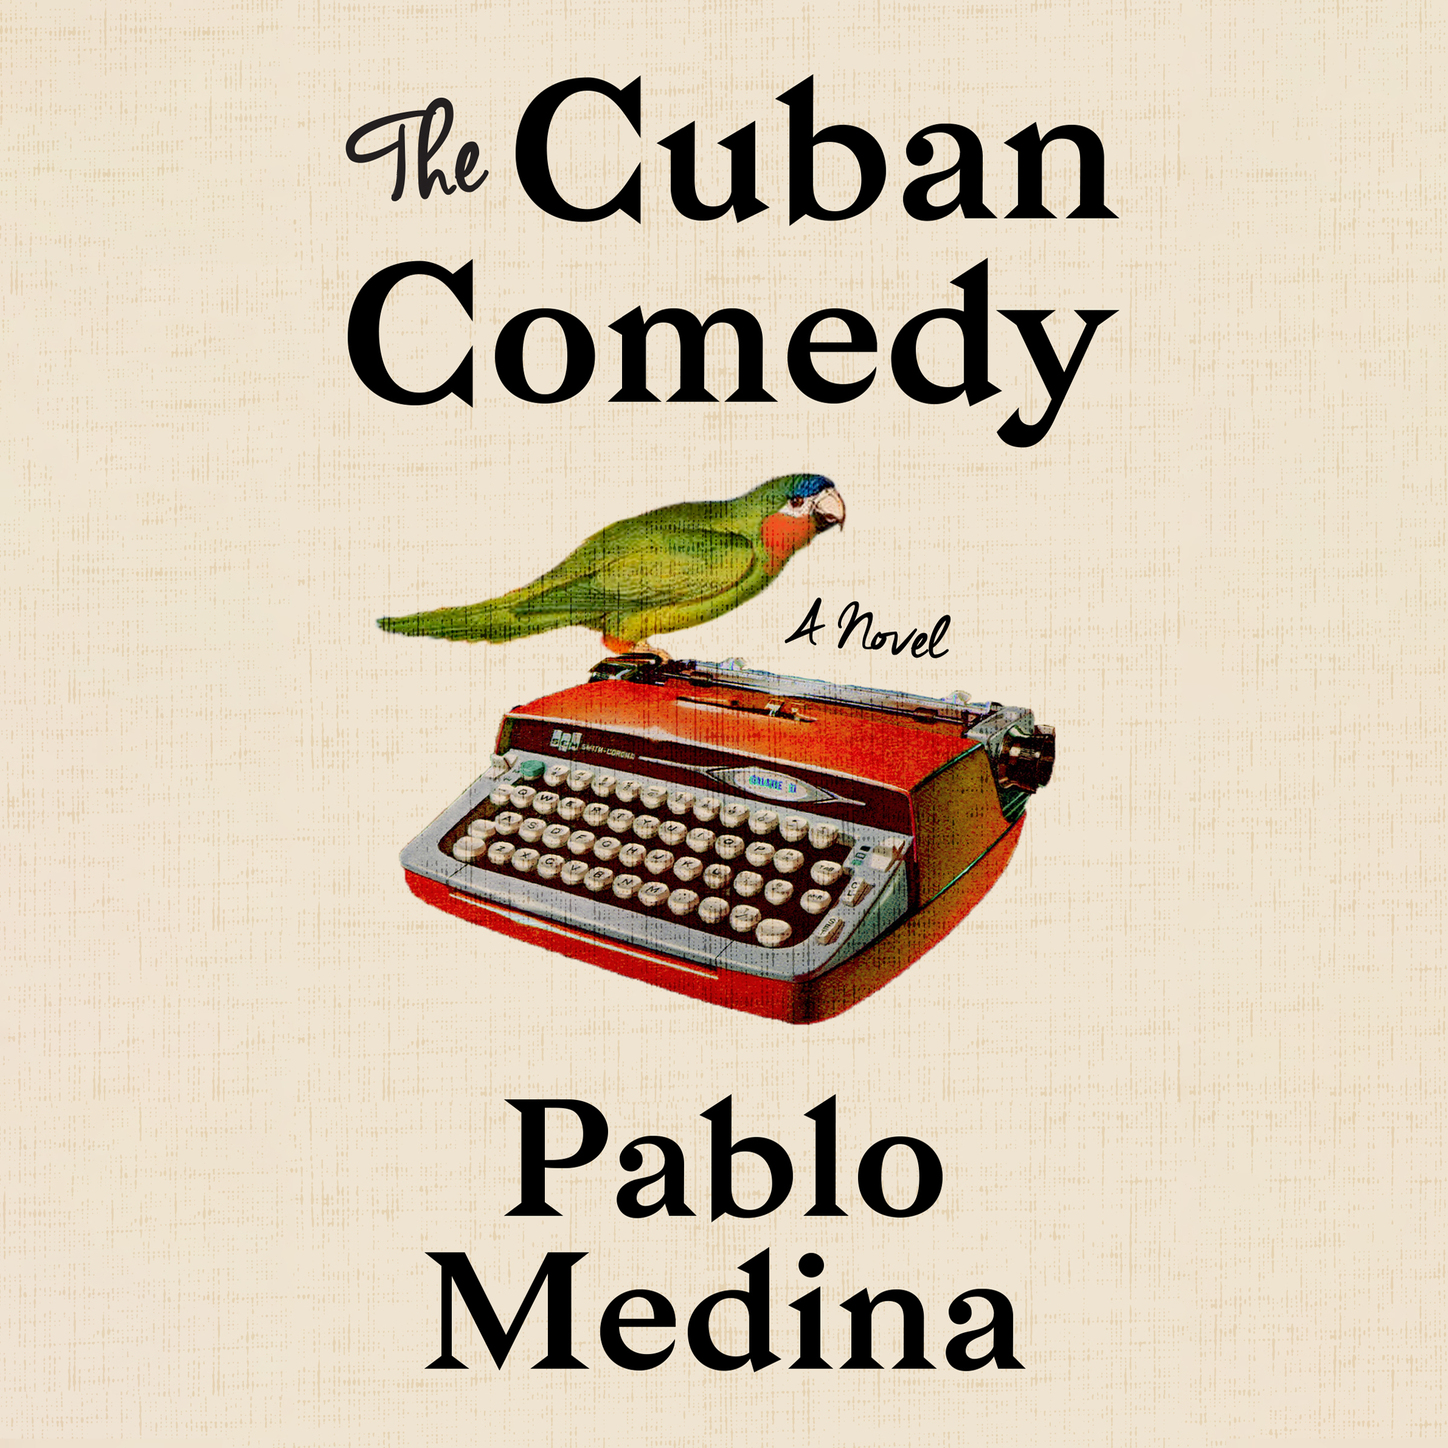 Pablo Medina The Cuban Comedy, The Cuban Comedy (Unabridged) deathtraps – the postmodern comedy thriller